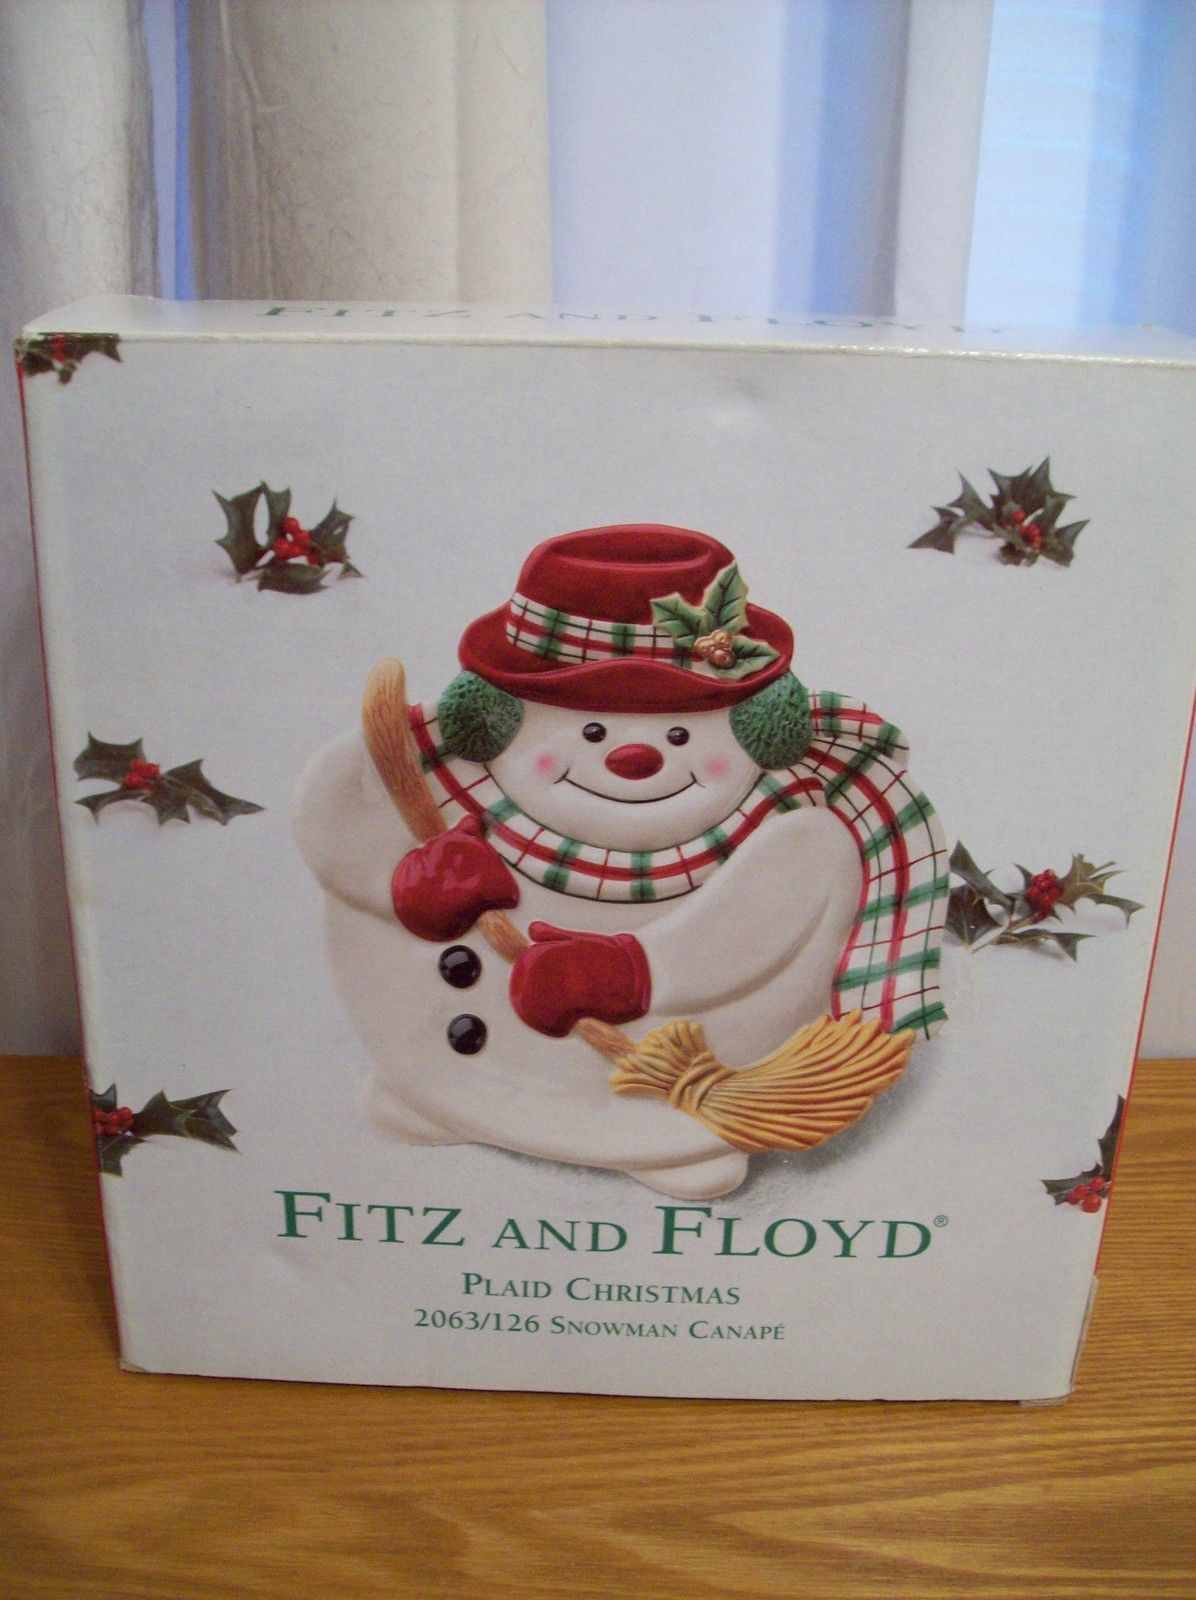 fitz and floyd plaid christmas snowman canape plate collector plates. Black Bedroom Furniture Sets. Home Design Ideas